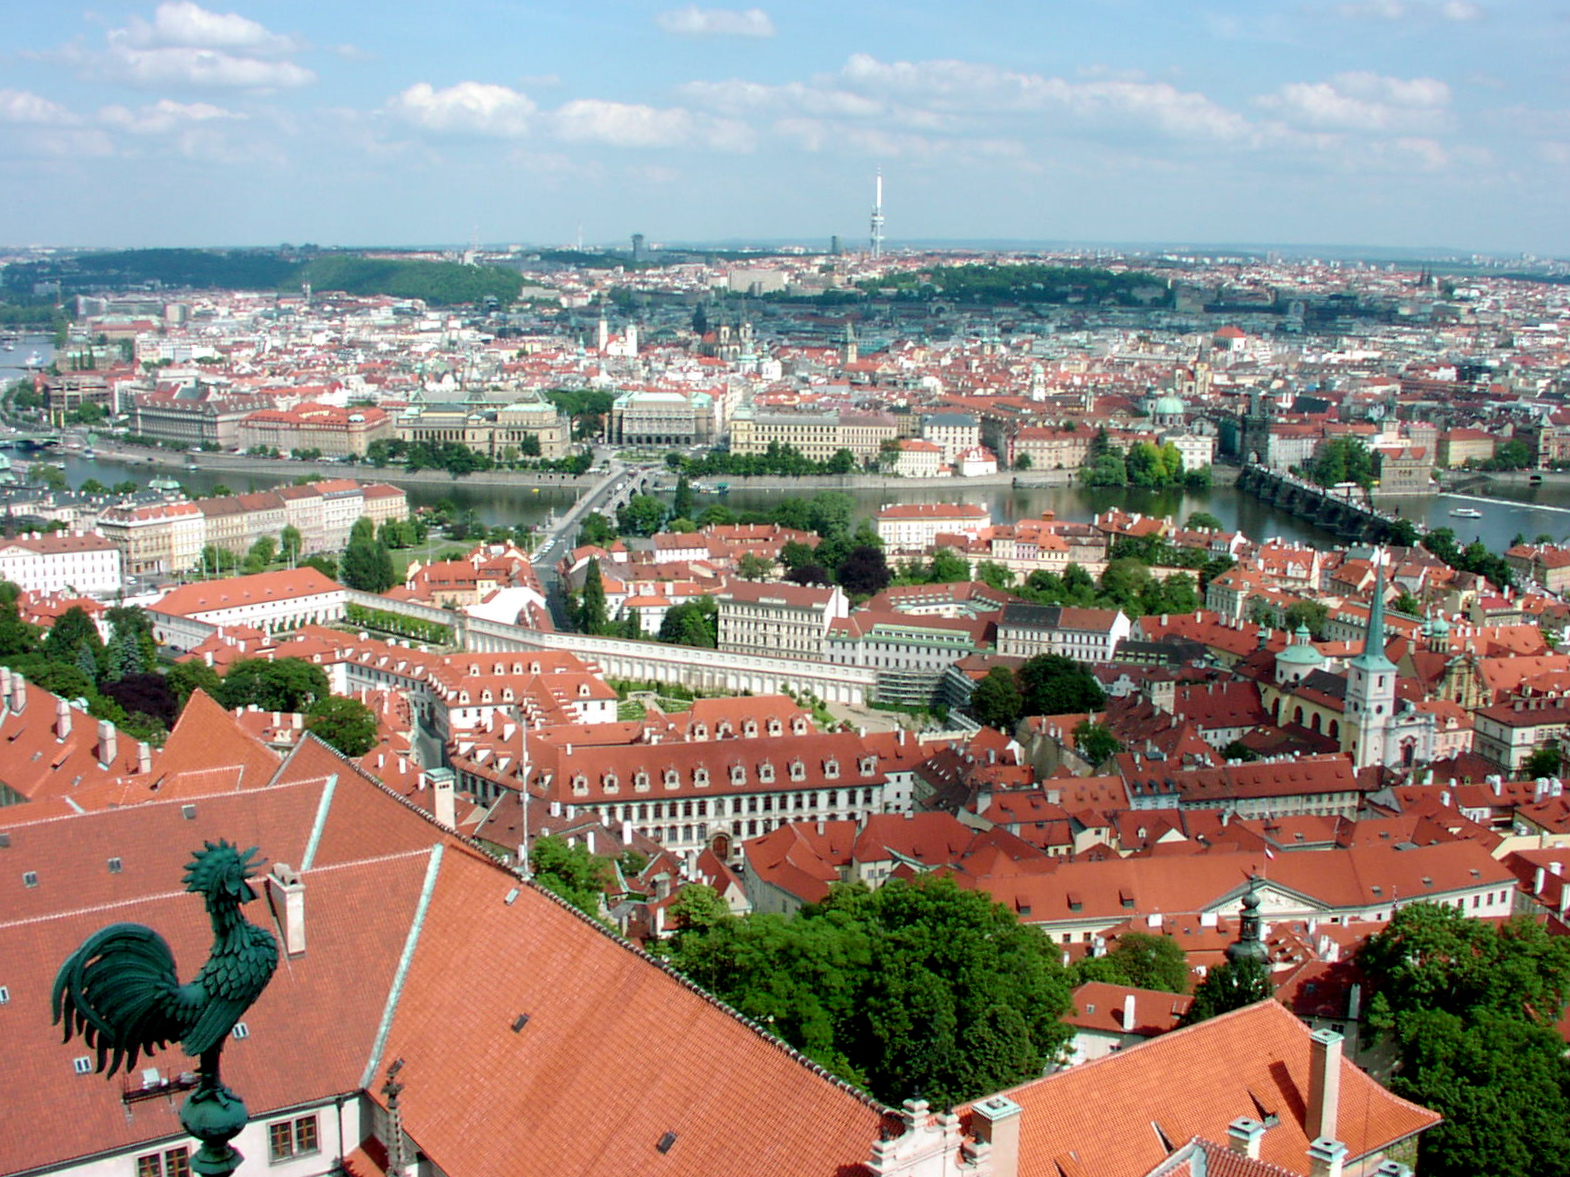 Overlooking the burnt orange roofs of Prague.